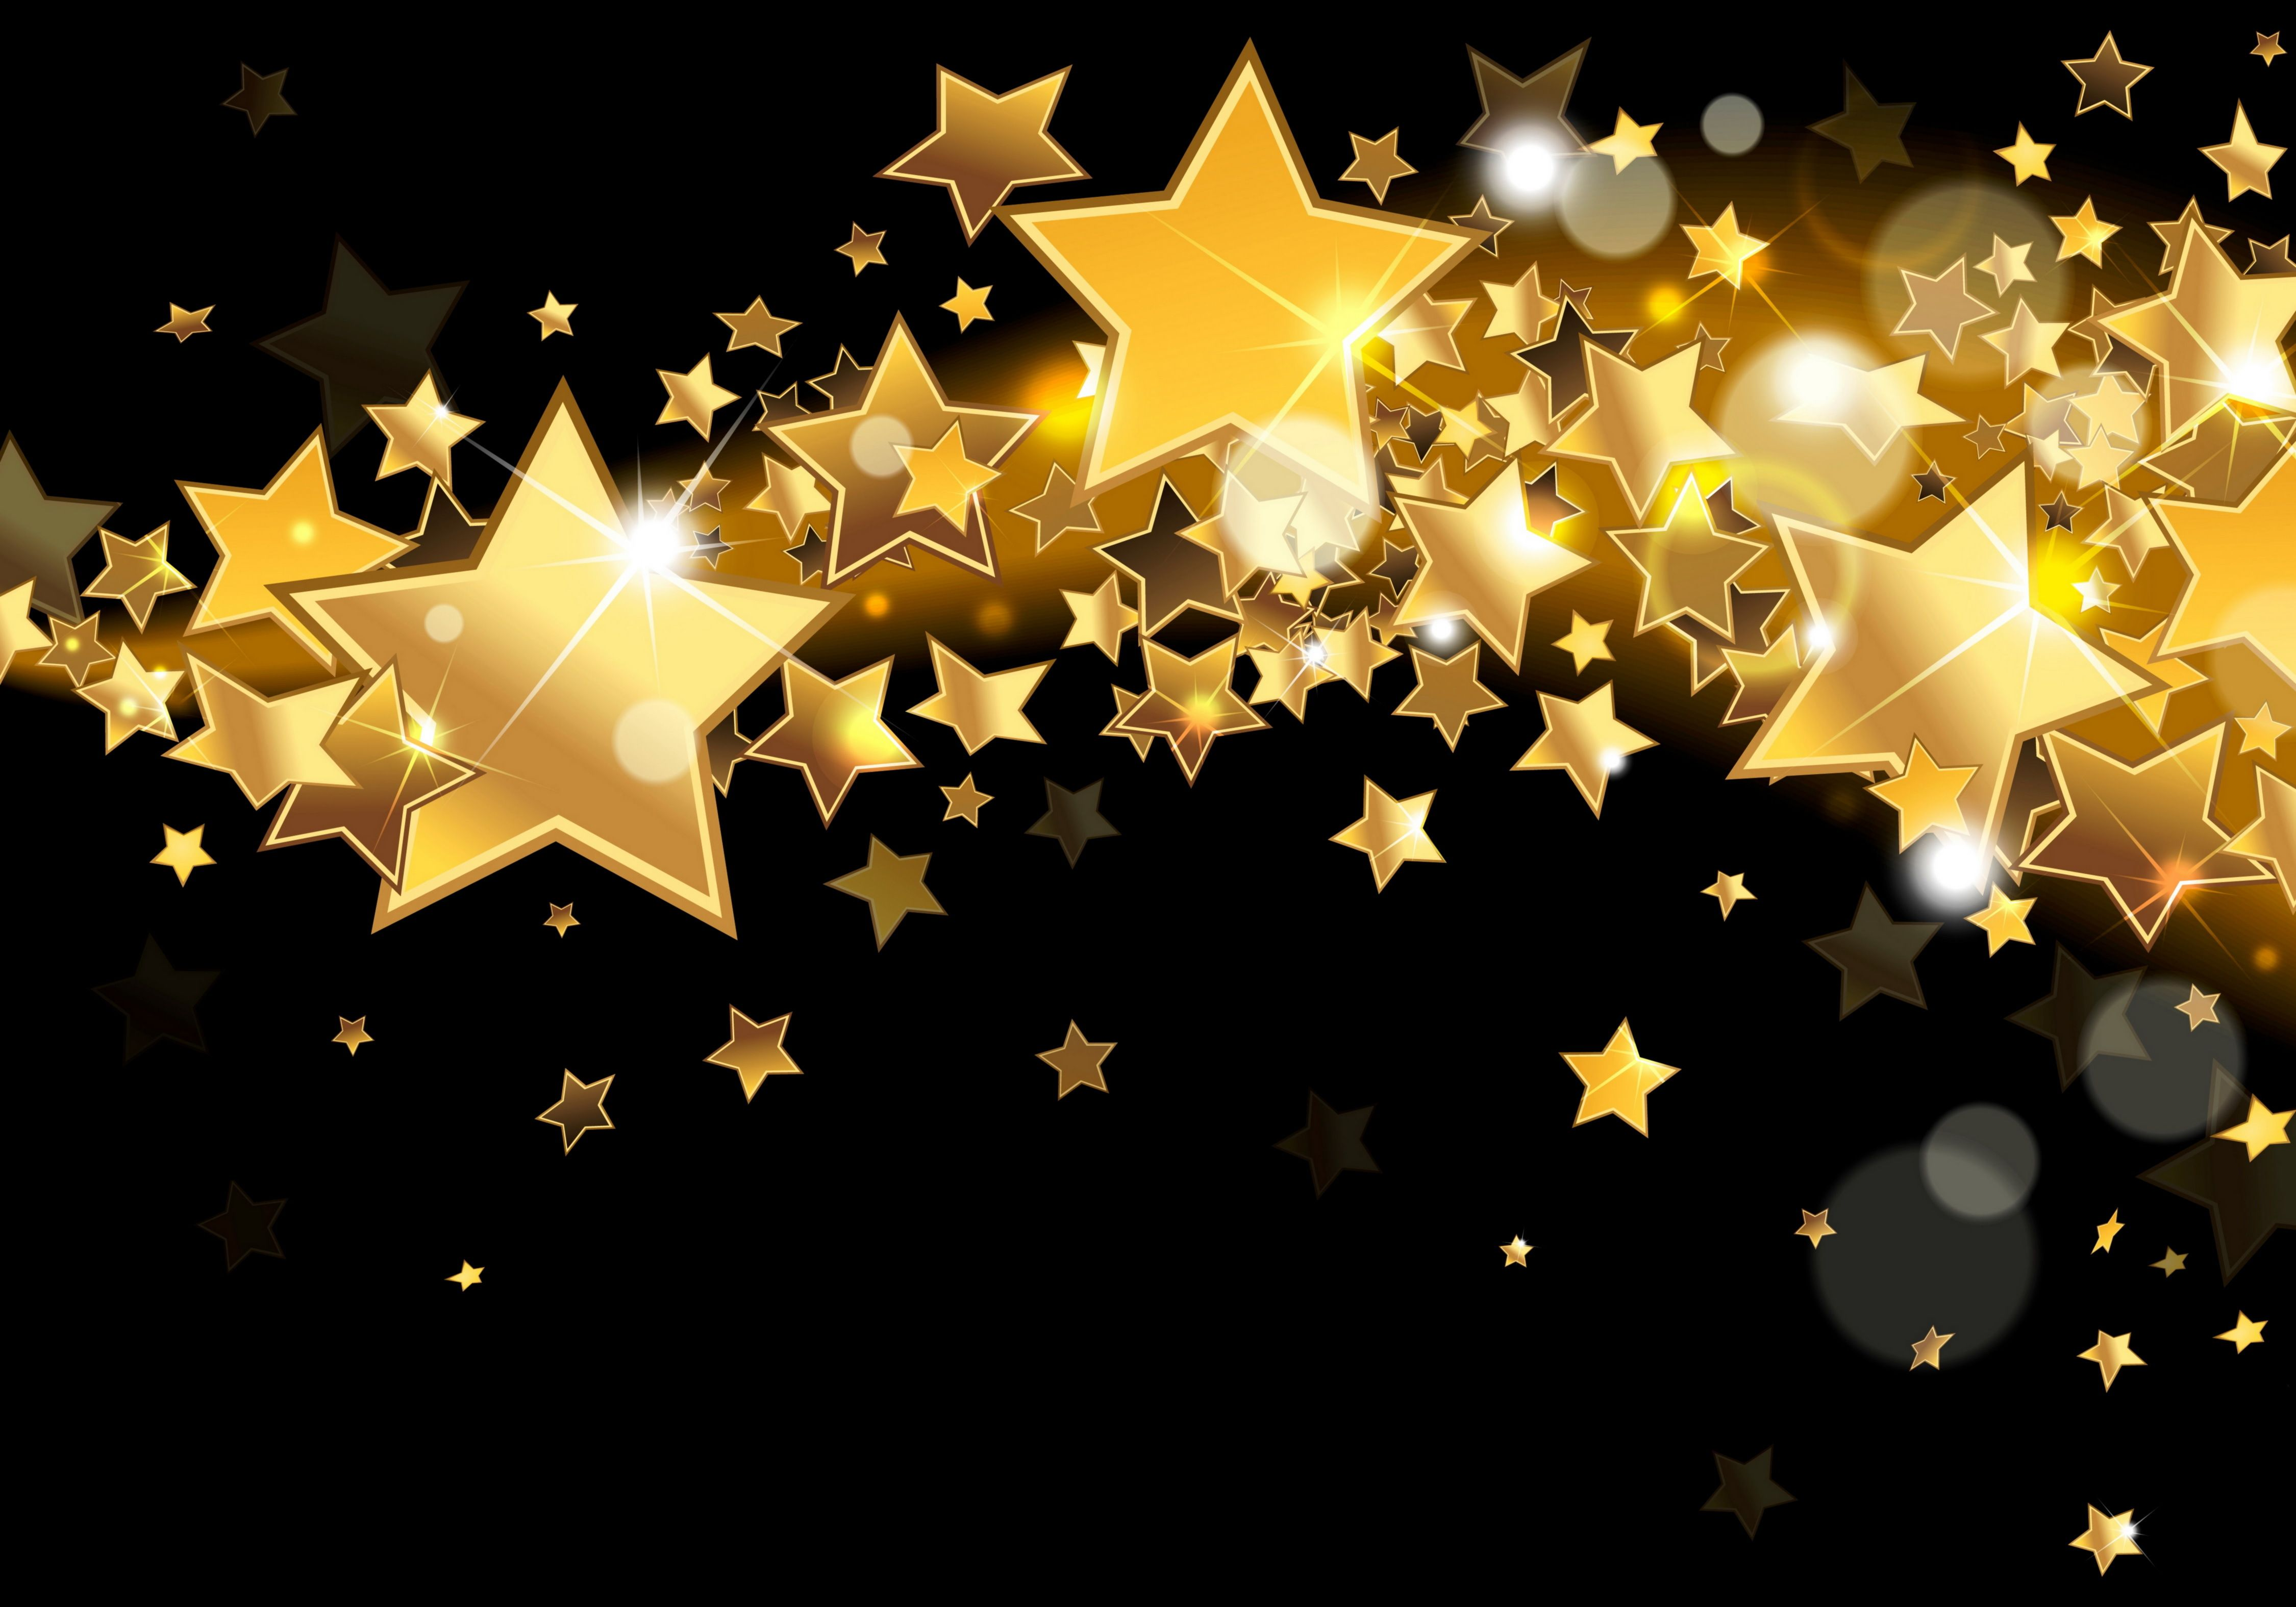 Gold Black Backgrounds Deposit Google Search Stars